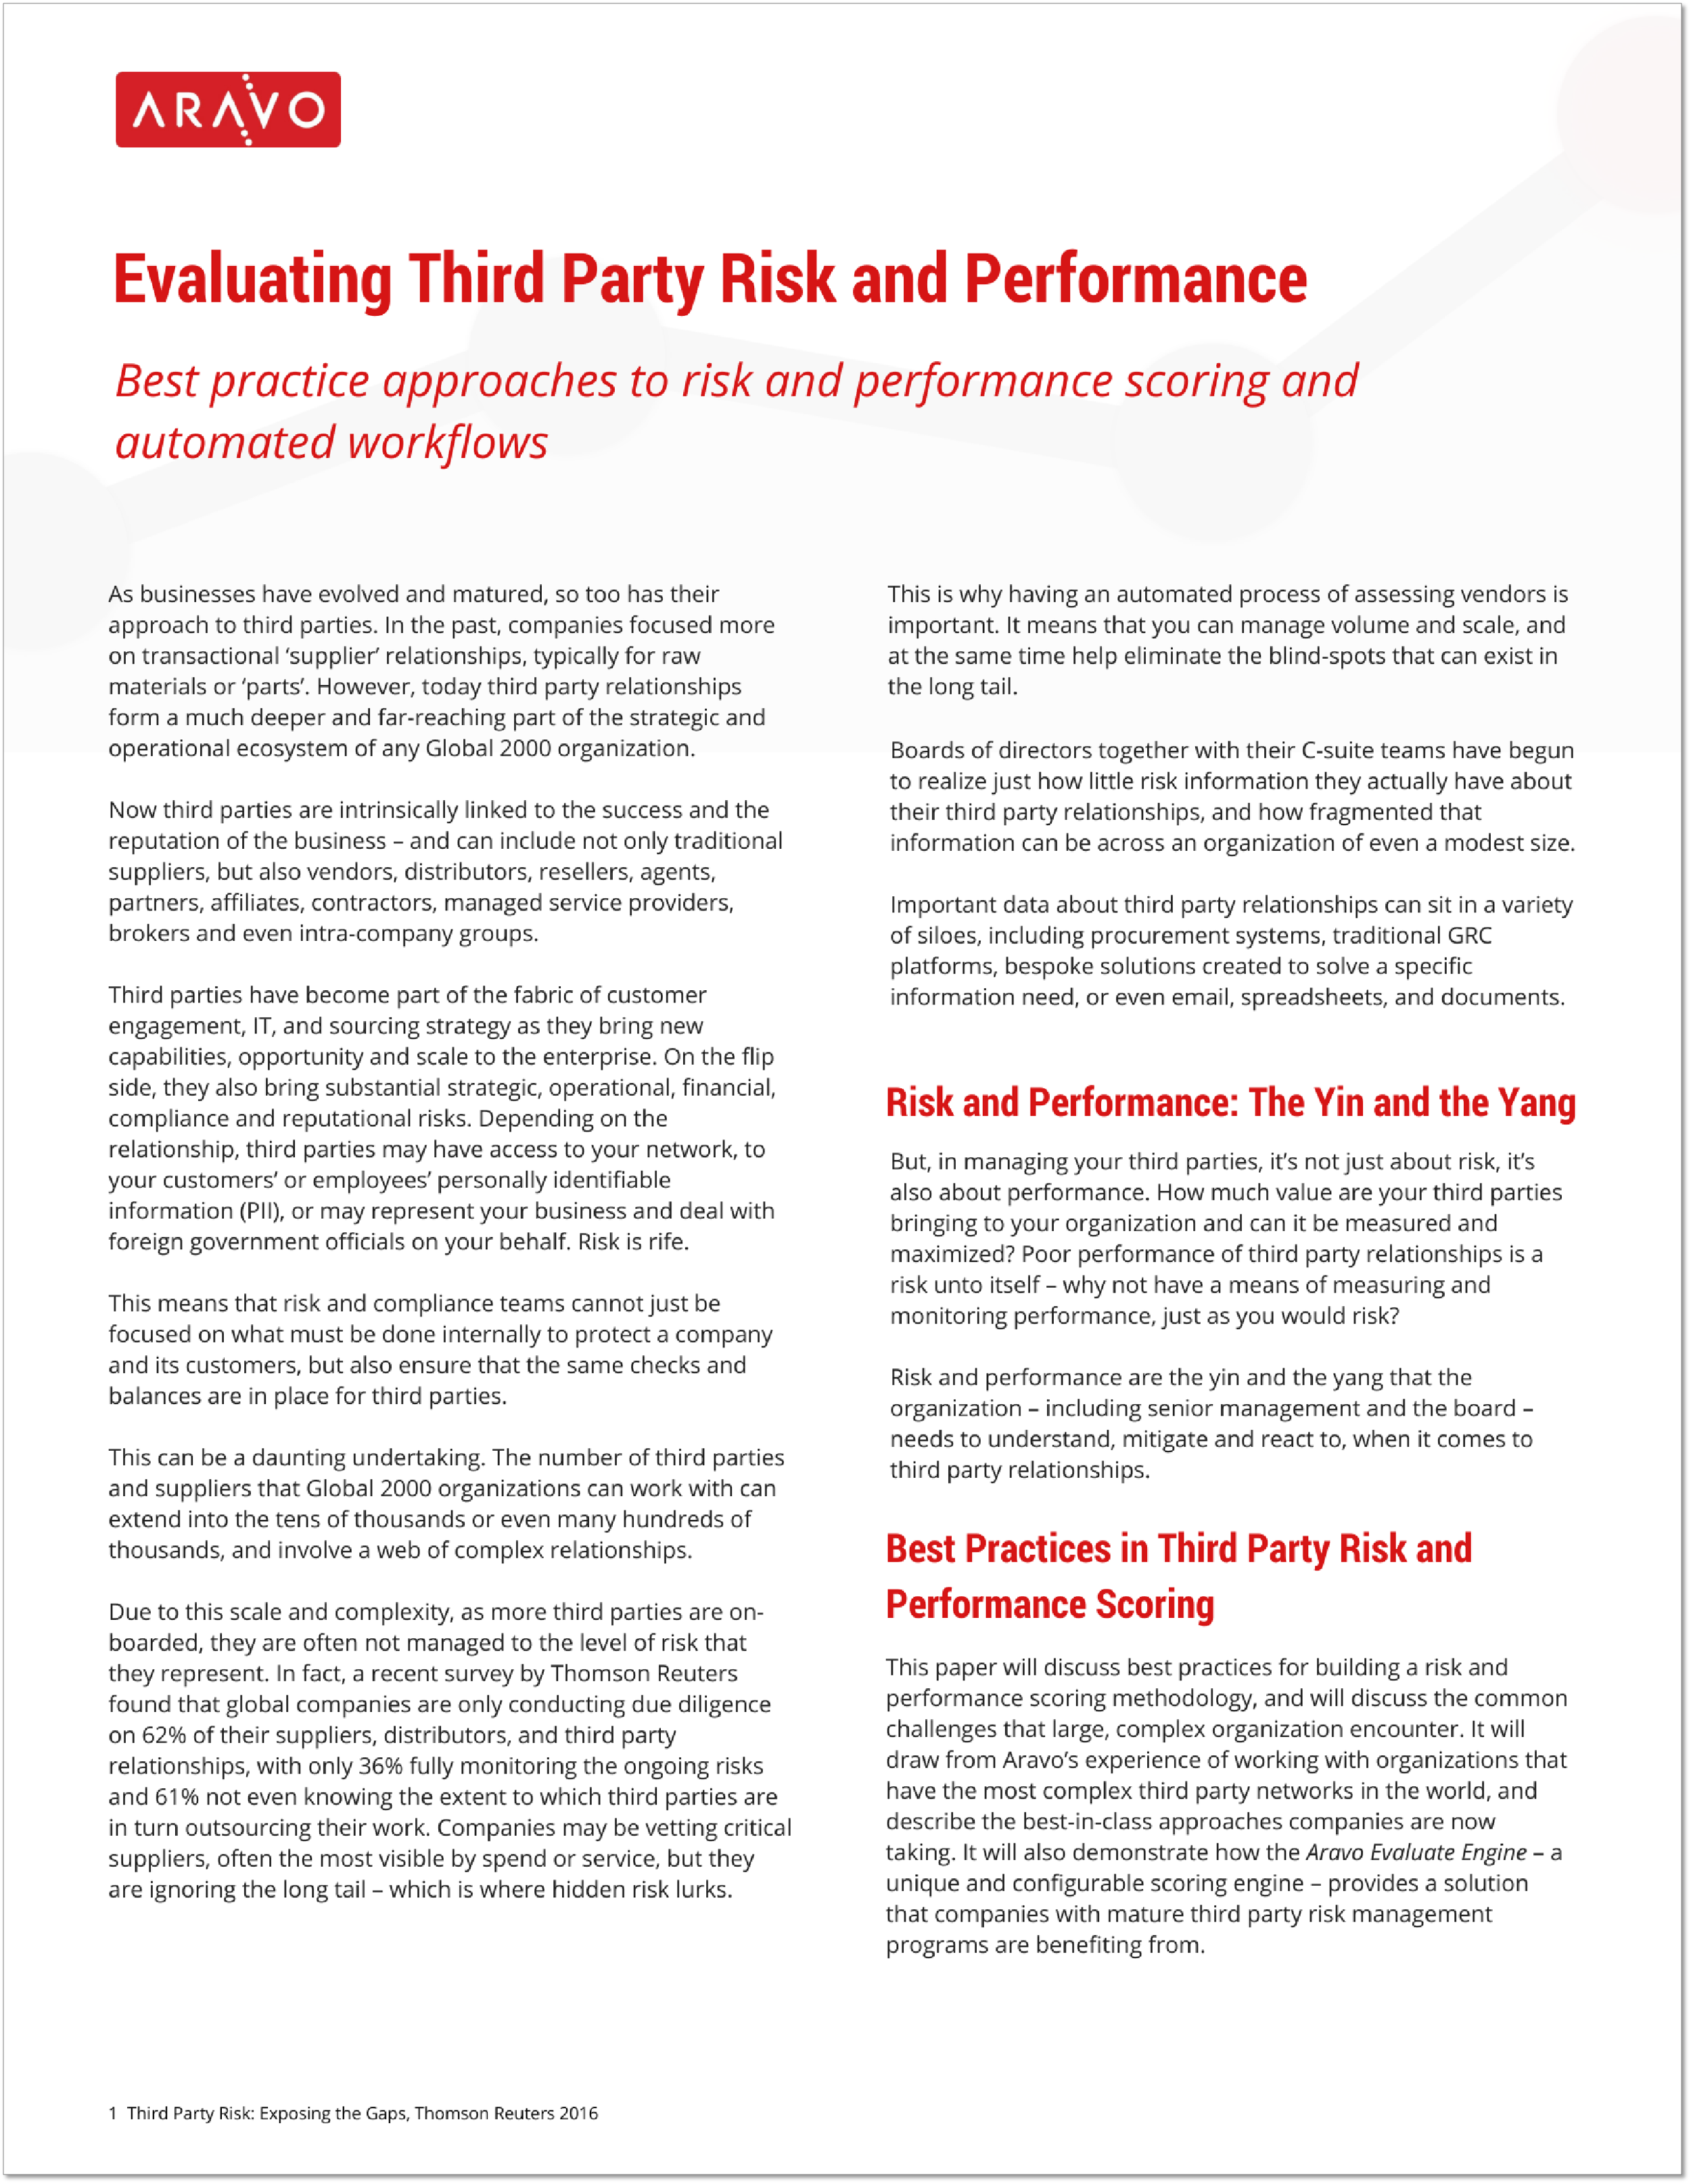 Aravo - Evaluating Third Party Risk and Performance - White Paper.png